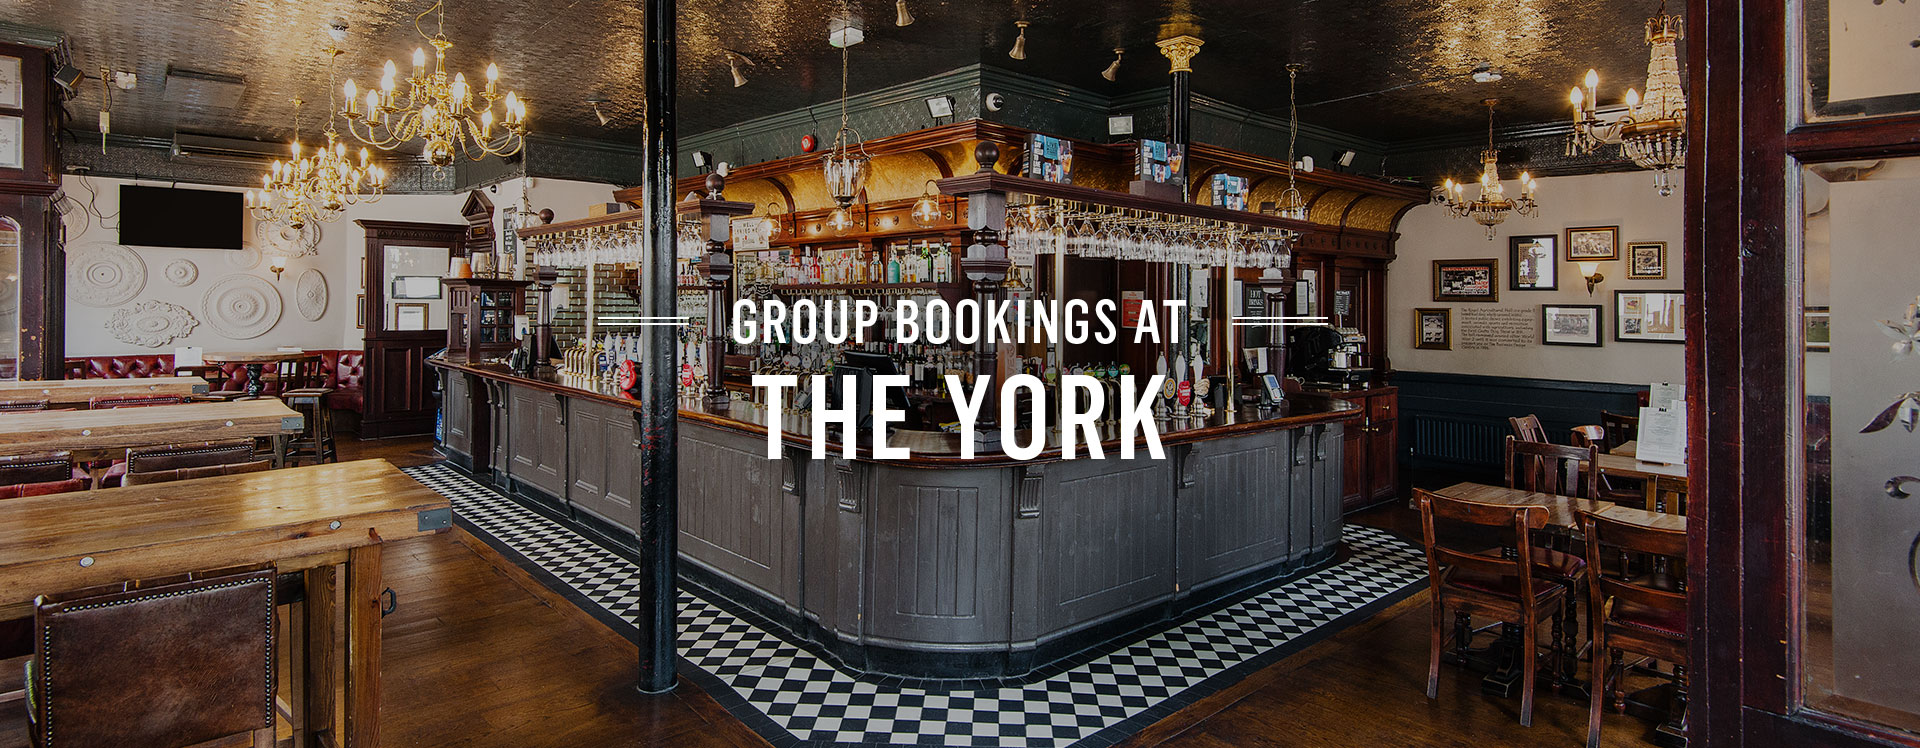 Group Bookings at The York